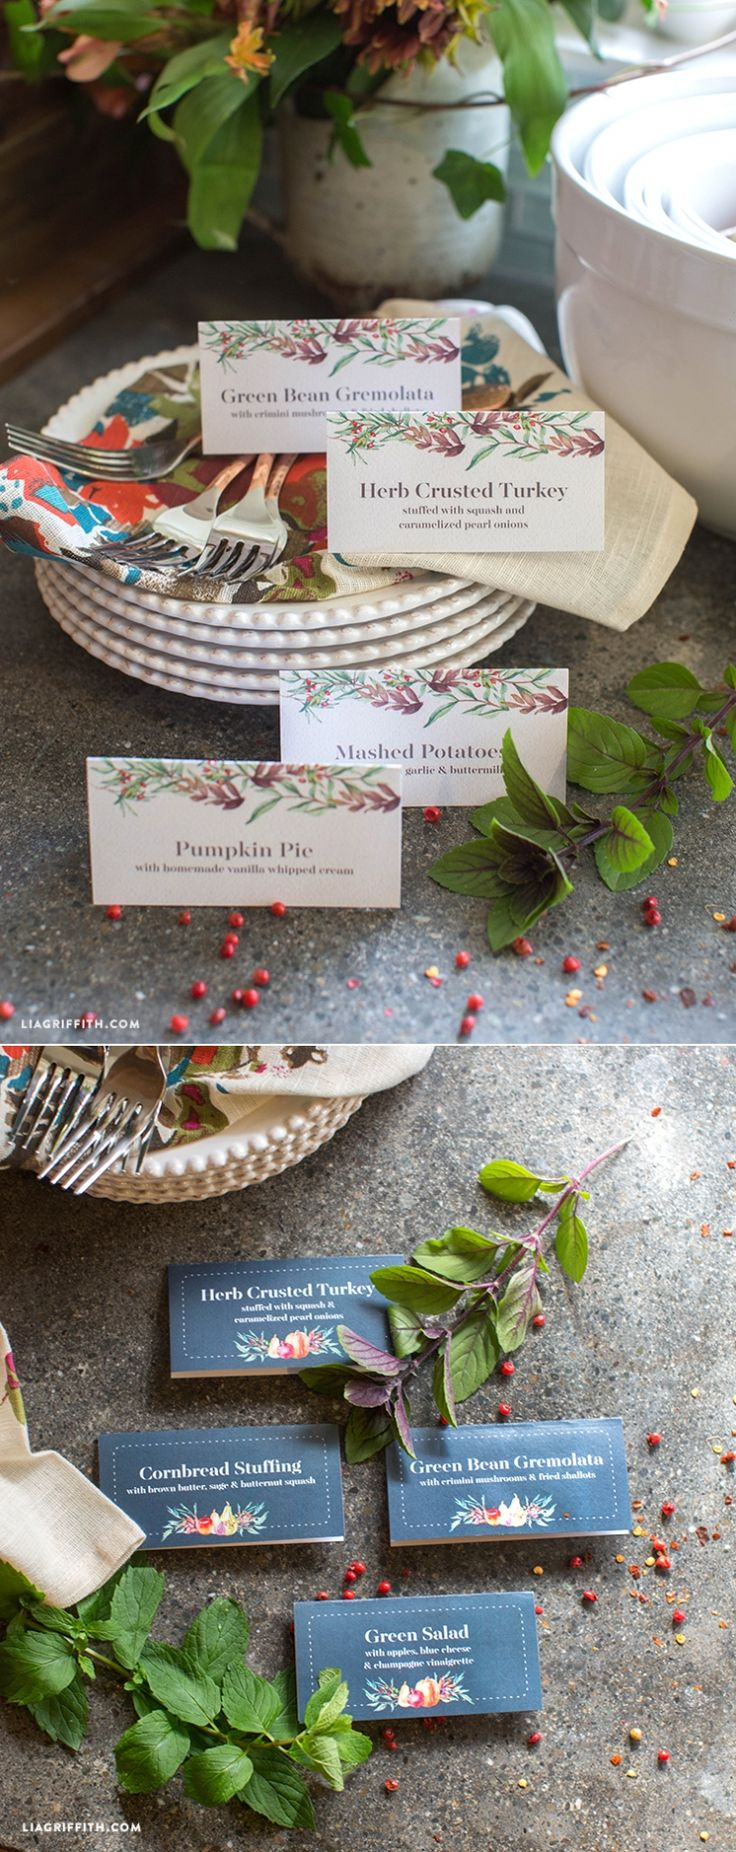 #Thanksgiving #Thanksgivingfood #Foodtags www.LiaGriffith.com: